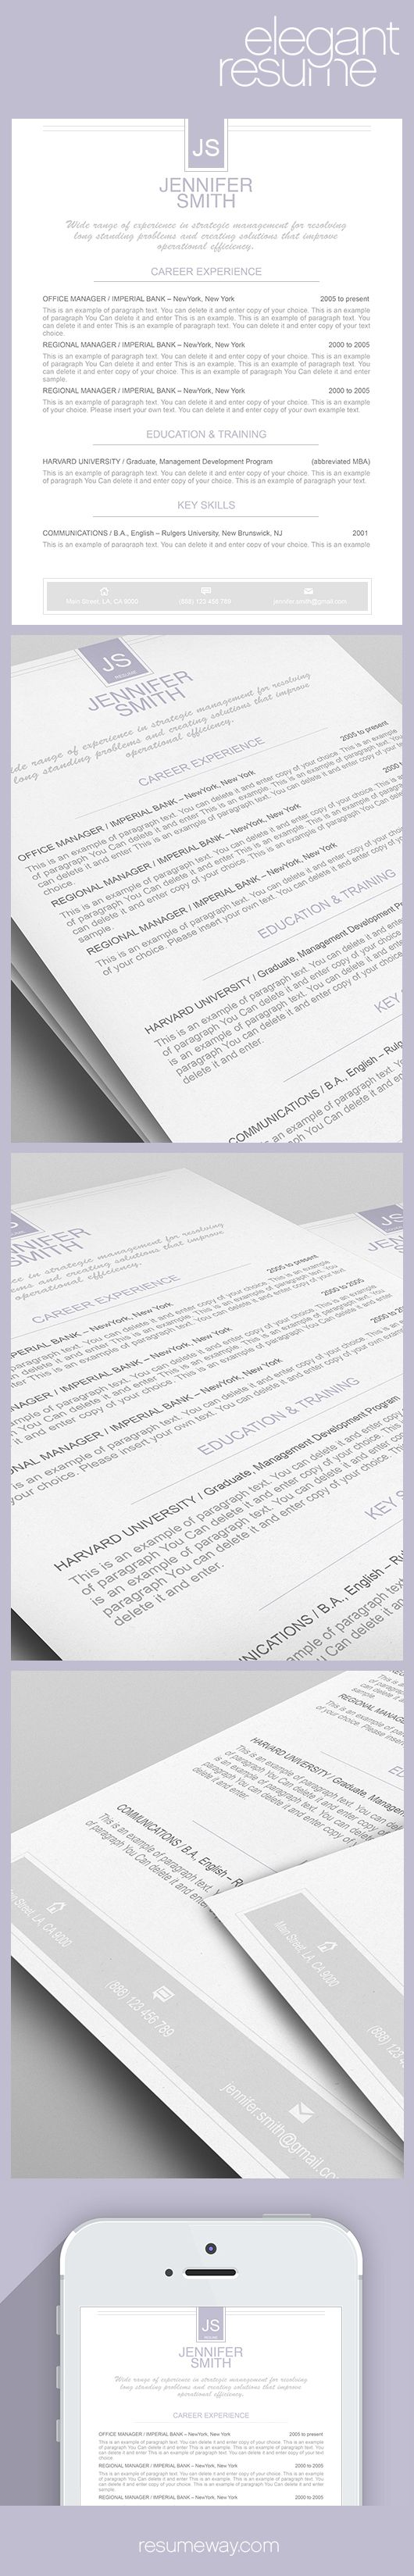 best ideas about resume cover letters perfect elegant resume template 110460 premium line of resume cover letter templates easy edit